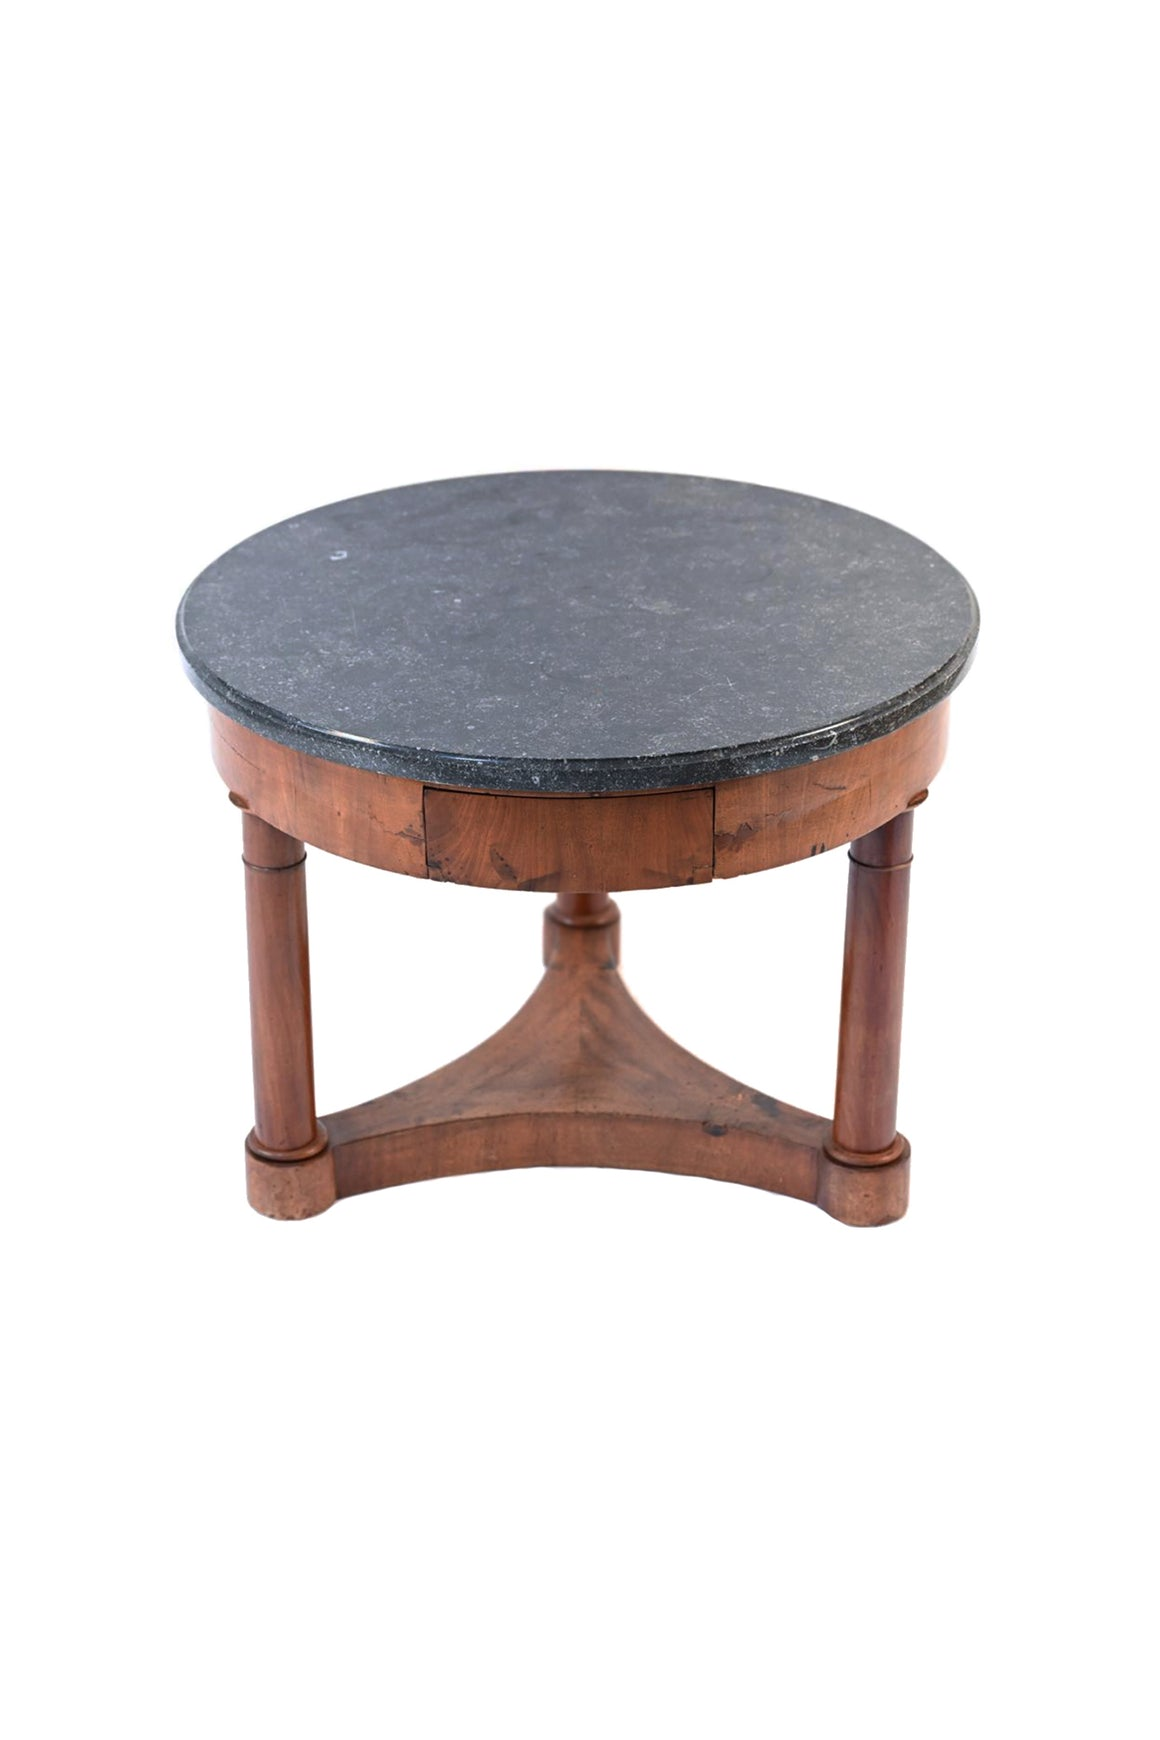 19th Century Neoclassical Mahogany & Marble Side Table